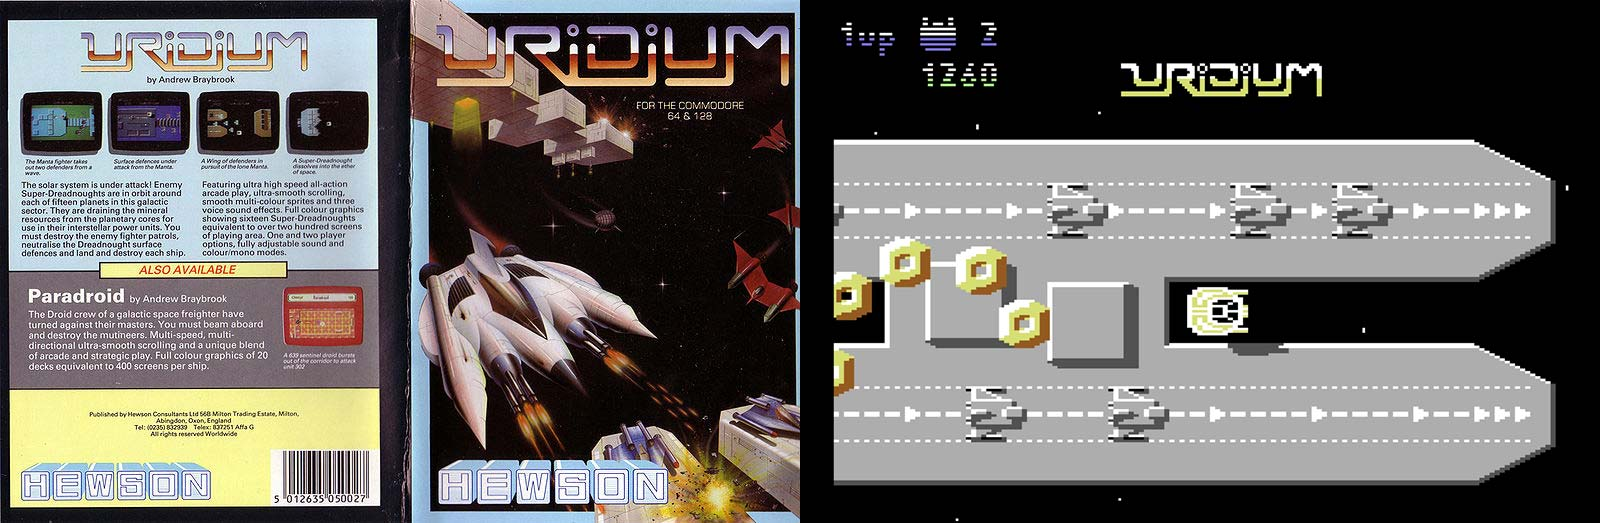 Uridium de Commodore 64